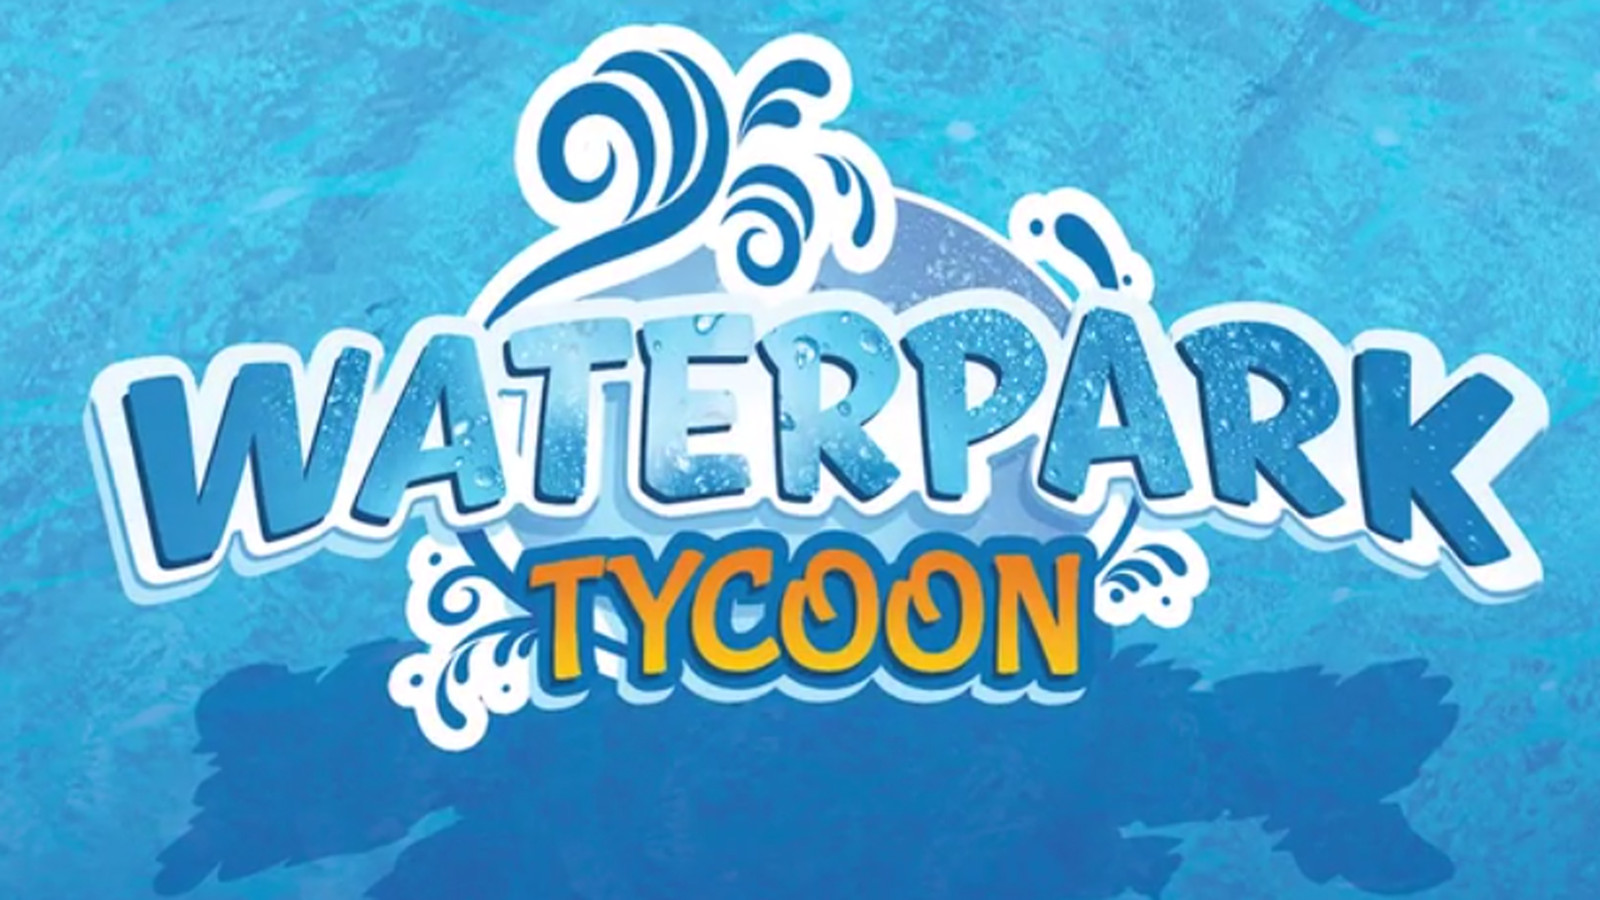 Water Park Tycoon launching for PC on May 23 - Polygon